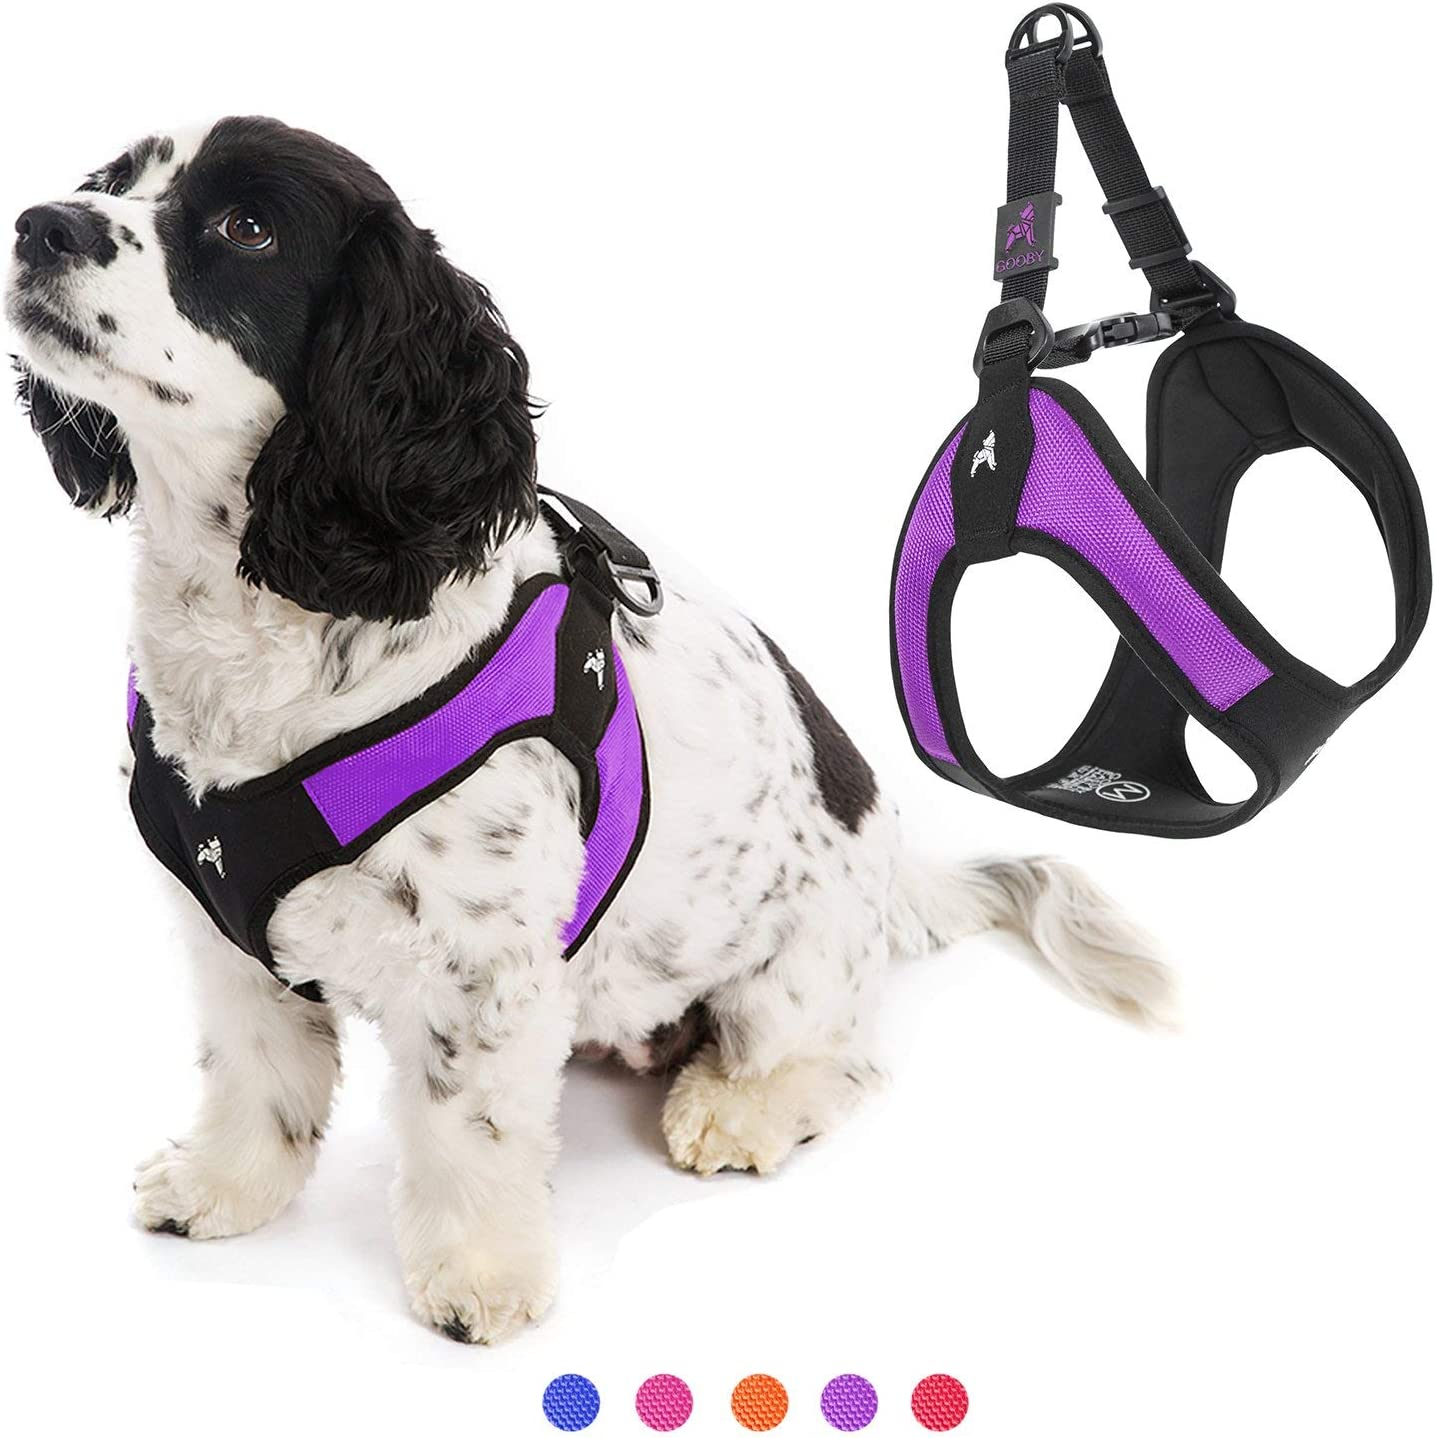 Amazon Com Gooby Dog Harness Purple Small Escape Free Easy Fit Patented Step In Small Dog Harness Perfect On The Go No Pull Harness For Small Dogs Or Cat